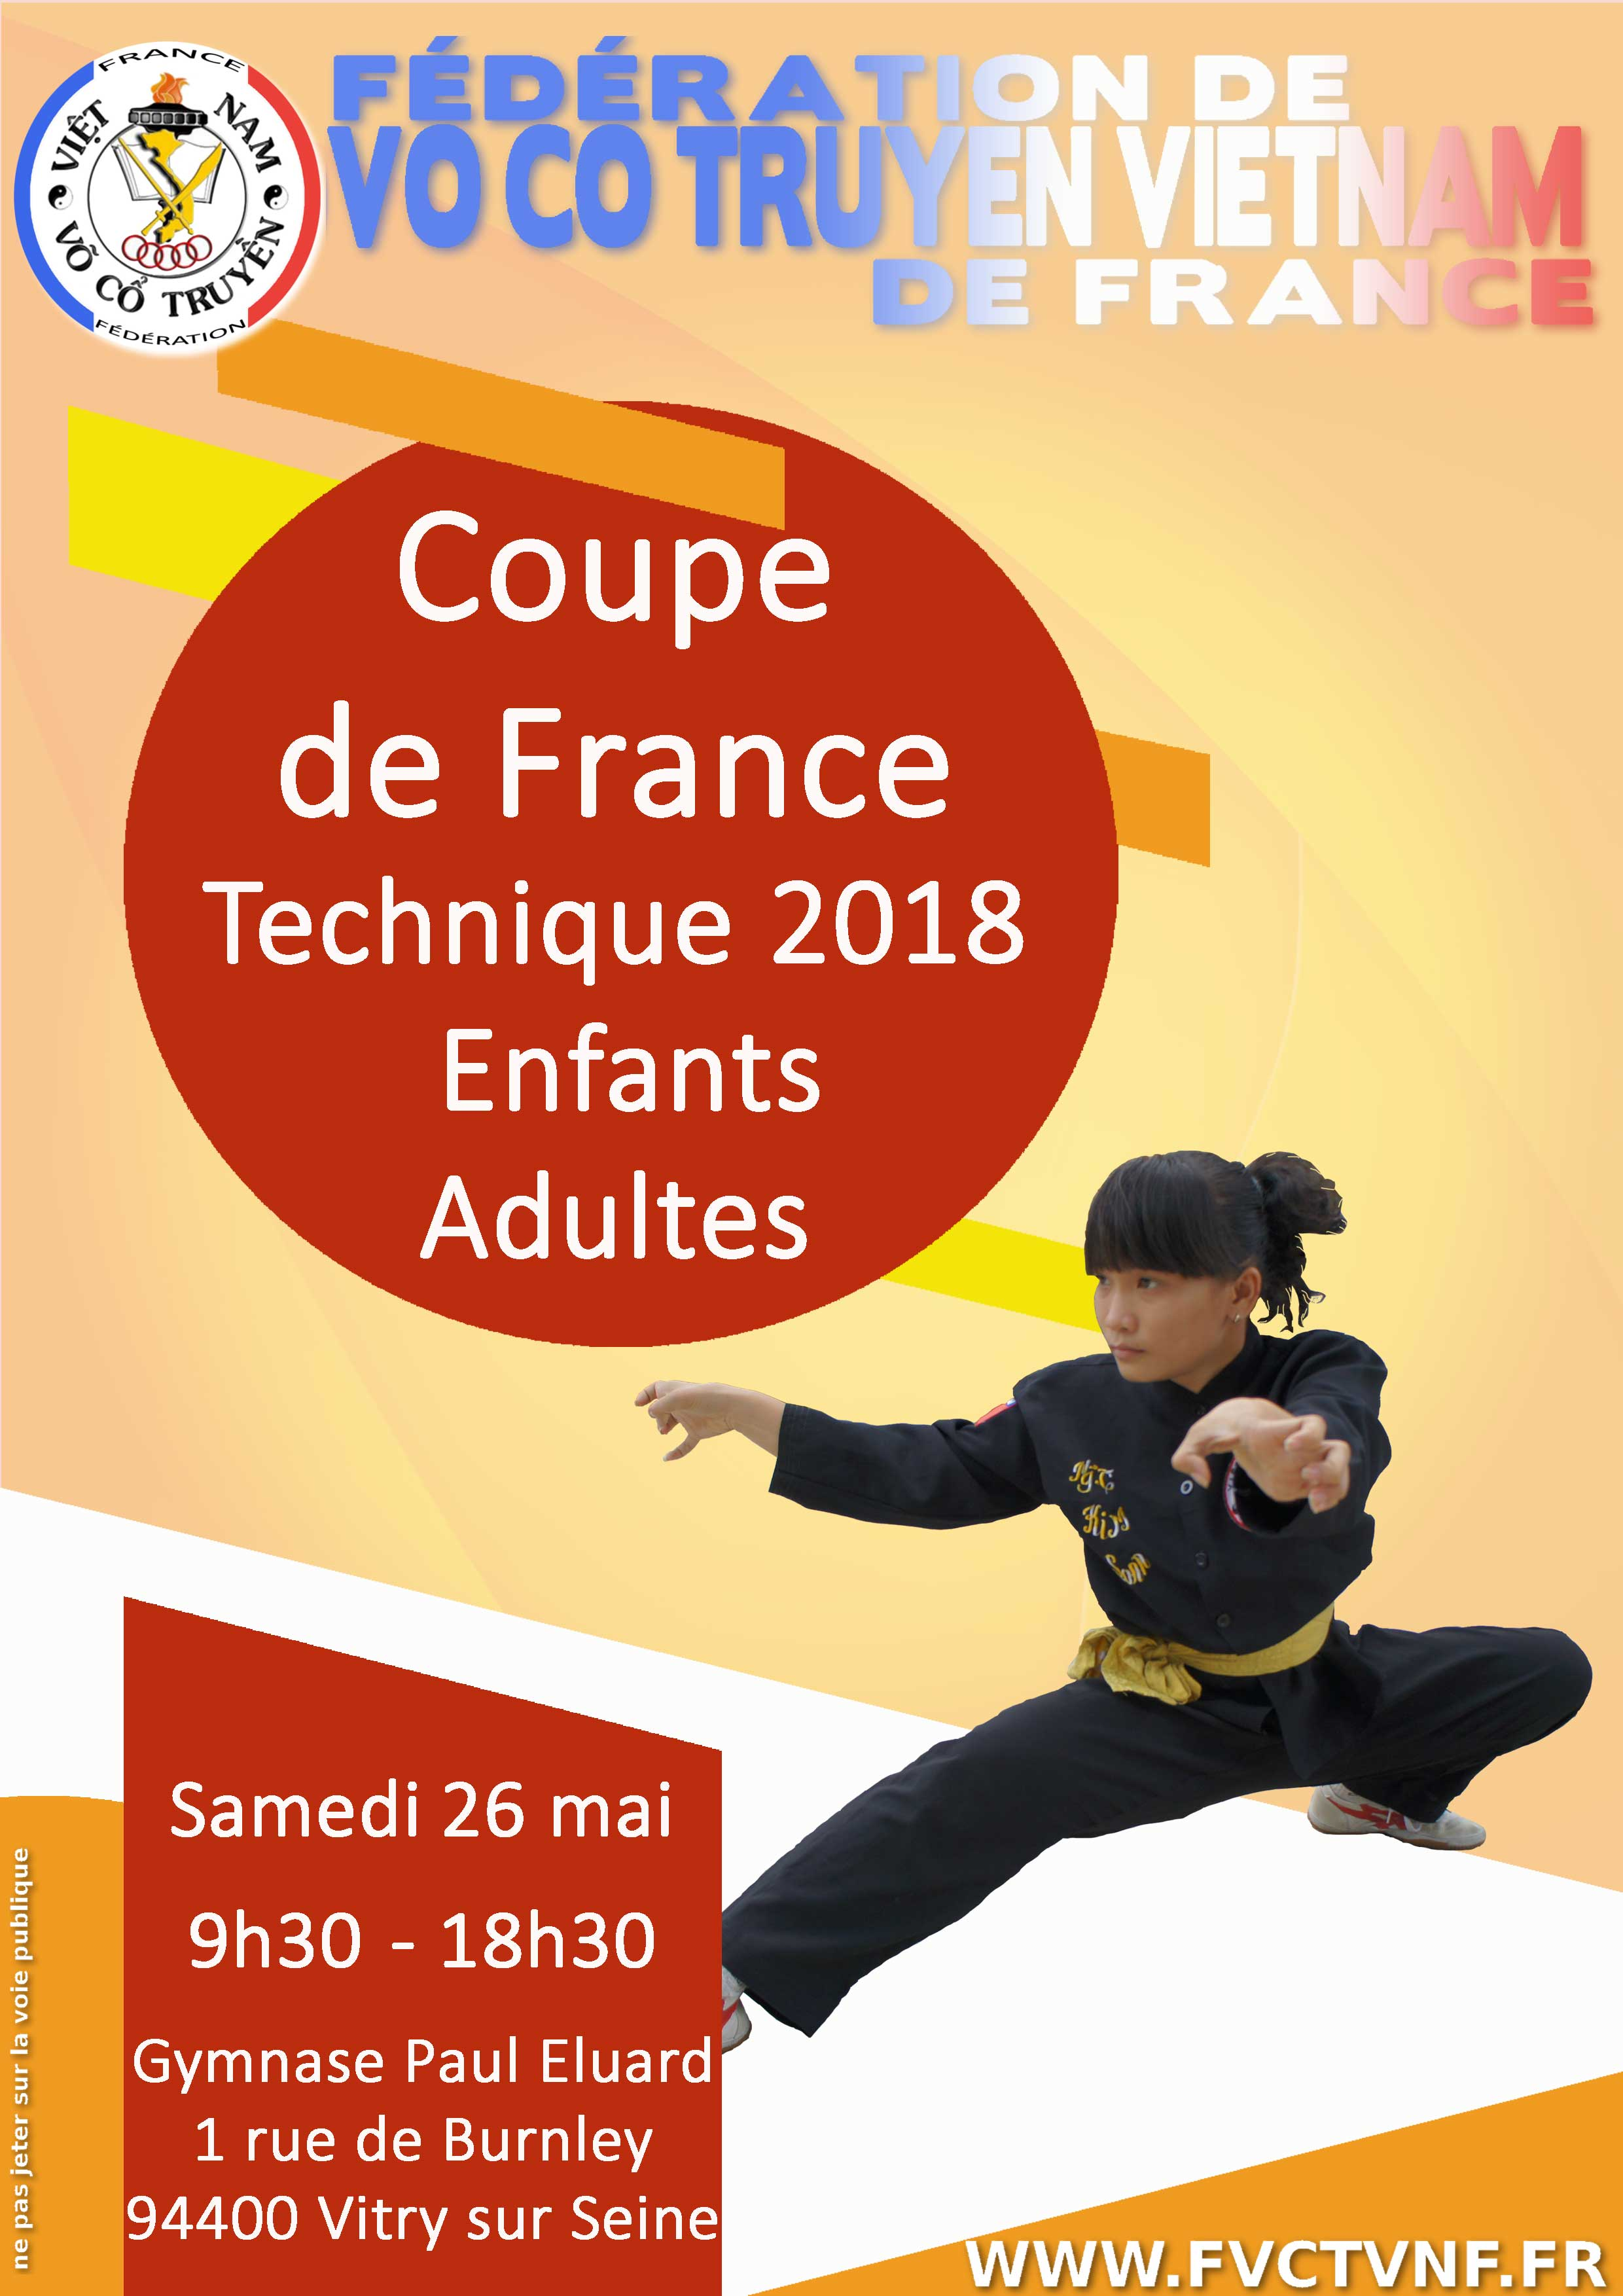 coupe-de-france-technique-2018-V2.jpg